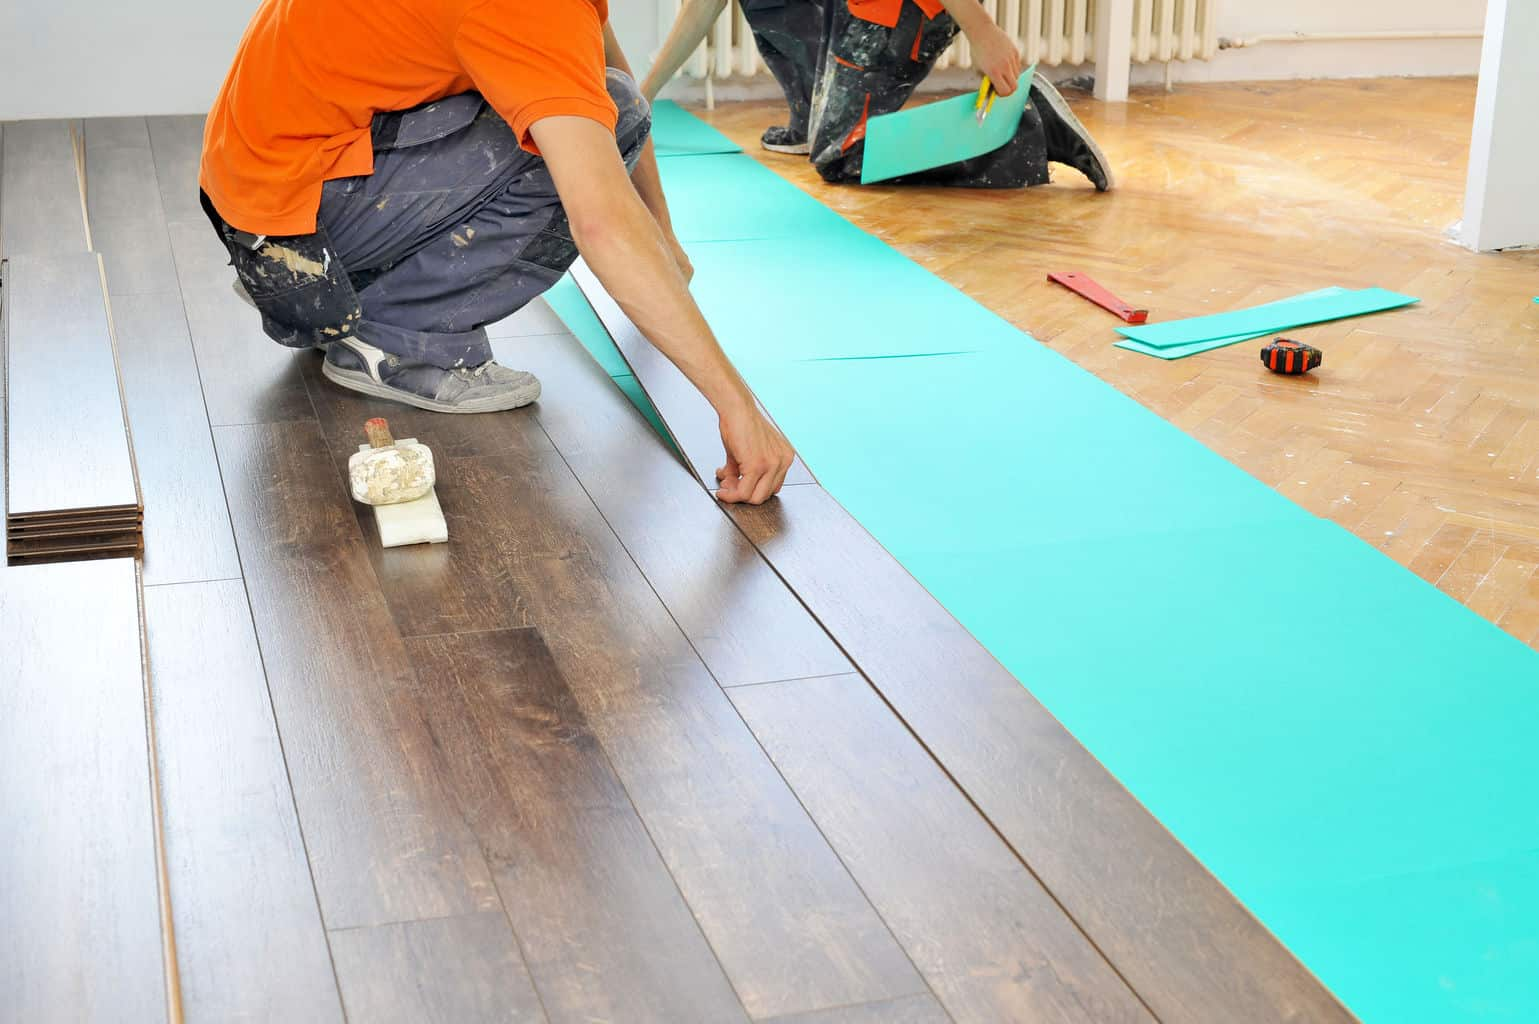 If You Are Thinking Of Putting Down Laminate In A Room Your Home Will Be Happy To Hear That Learning How Lay Floor Is Much Easier Than